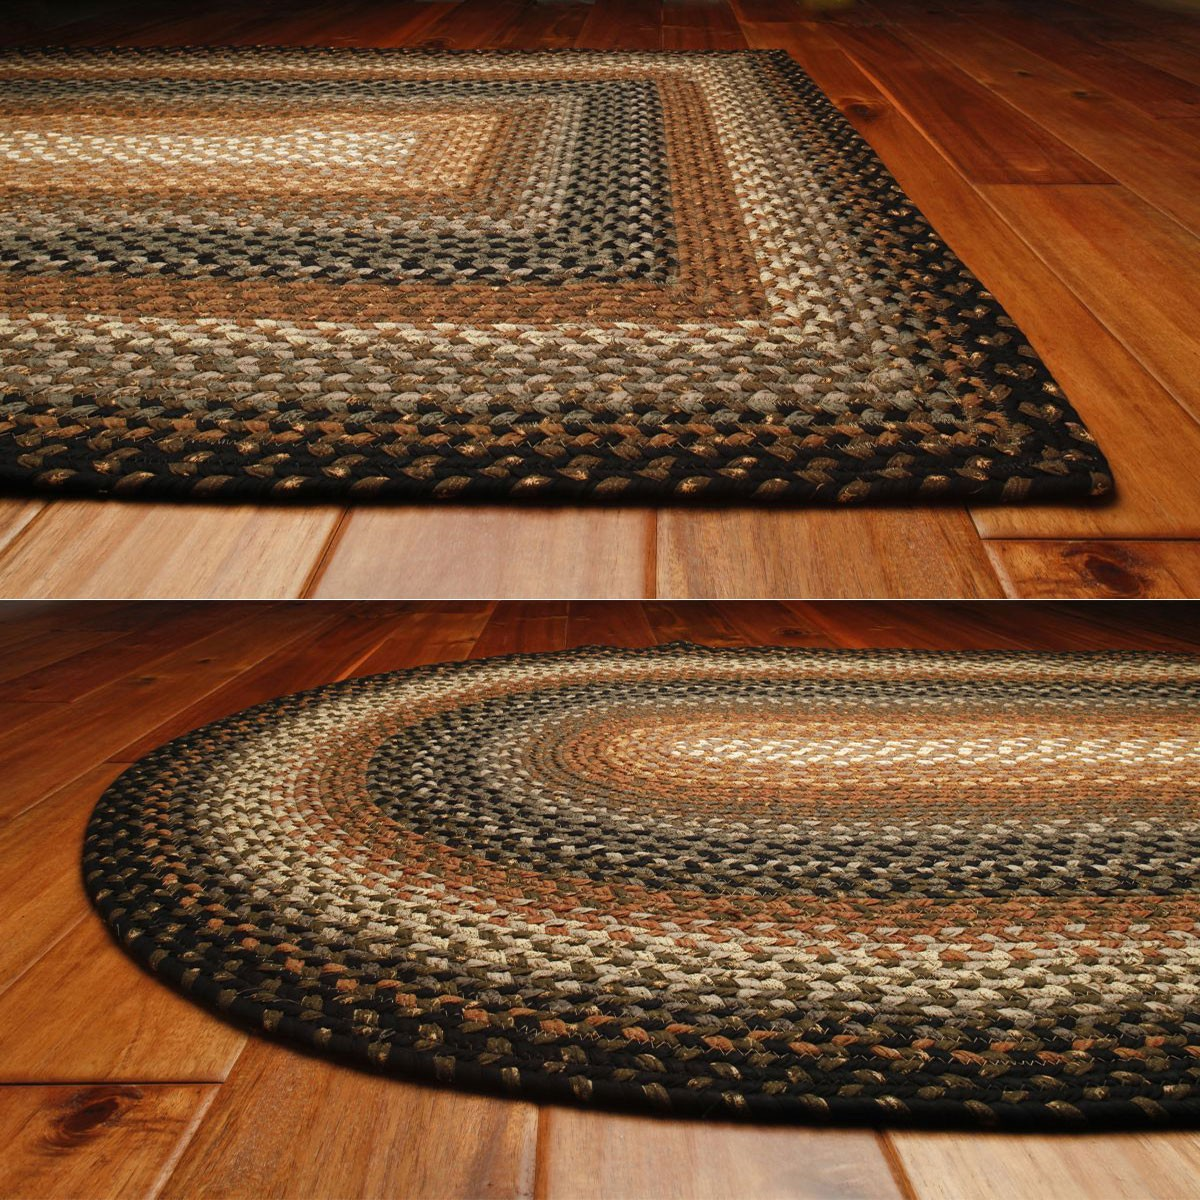 Cocoa Bean Cotton Braided Rugs